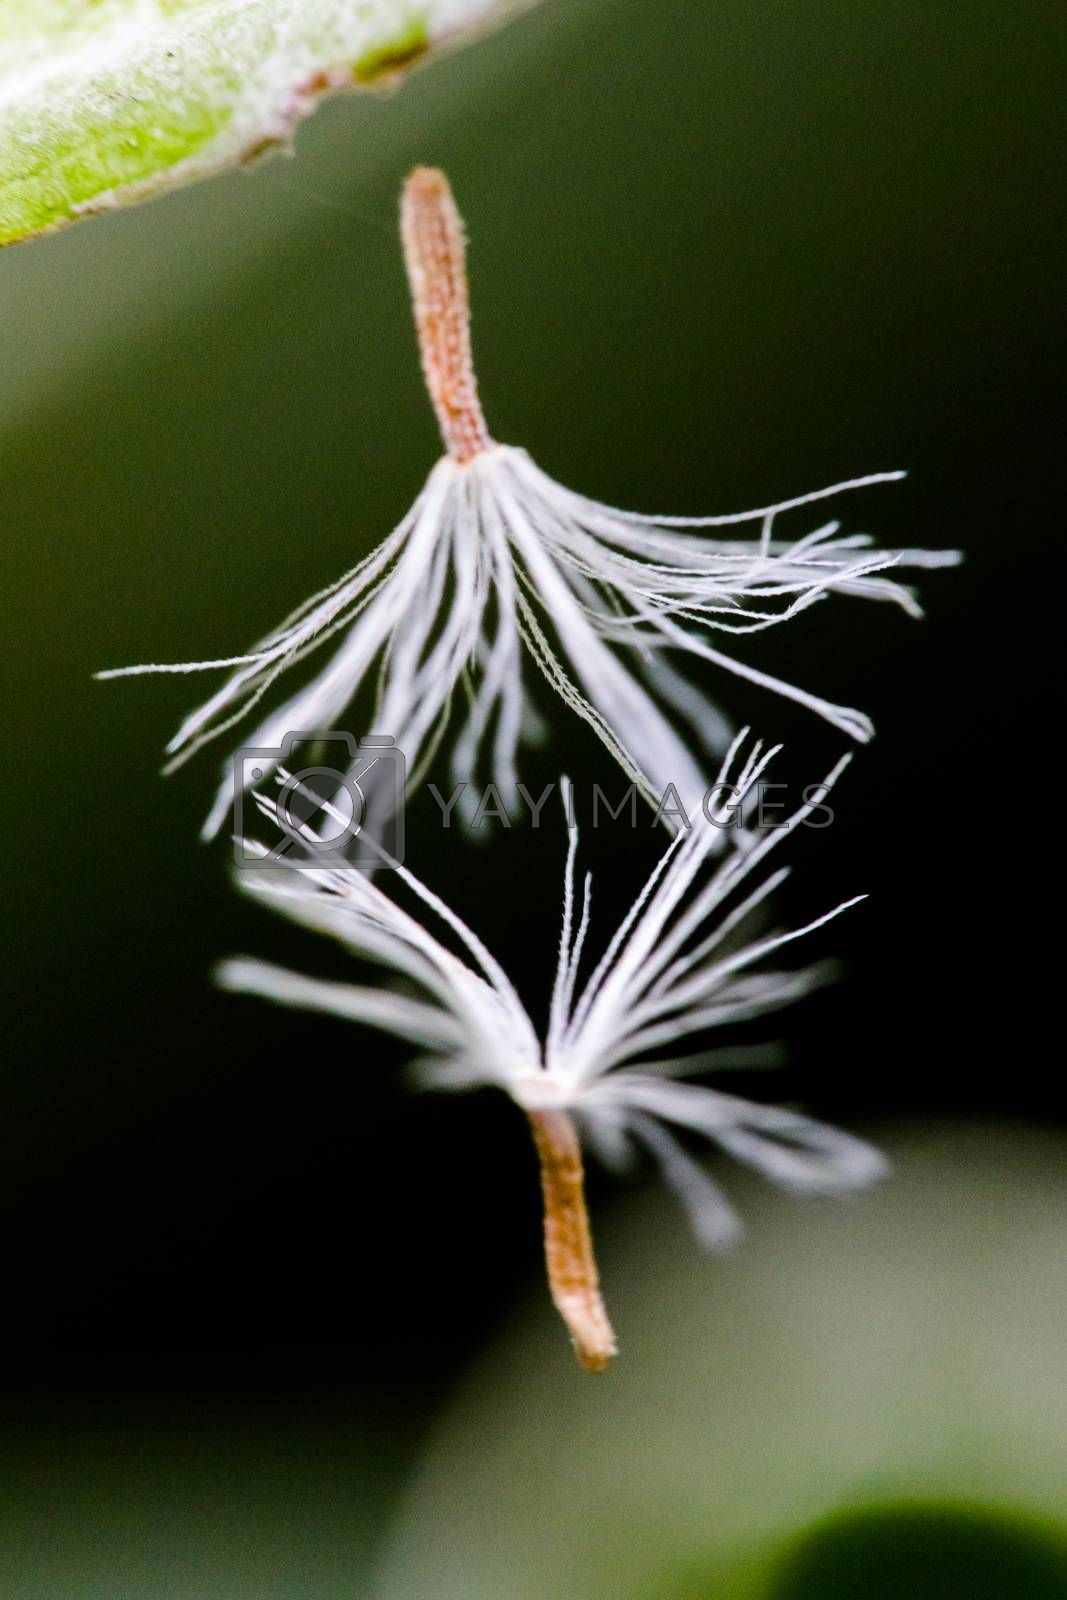 Dandelion seeds dancing in the wind